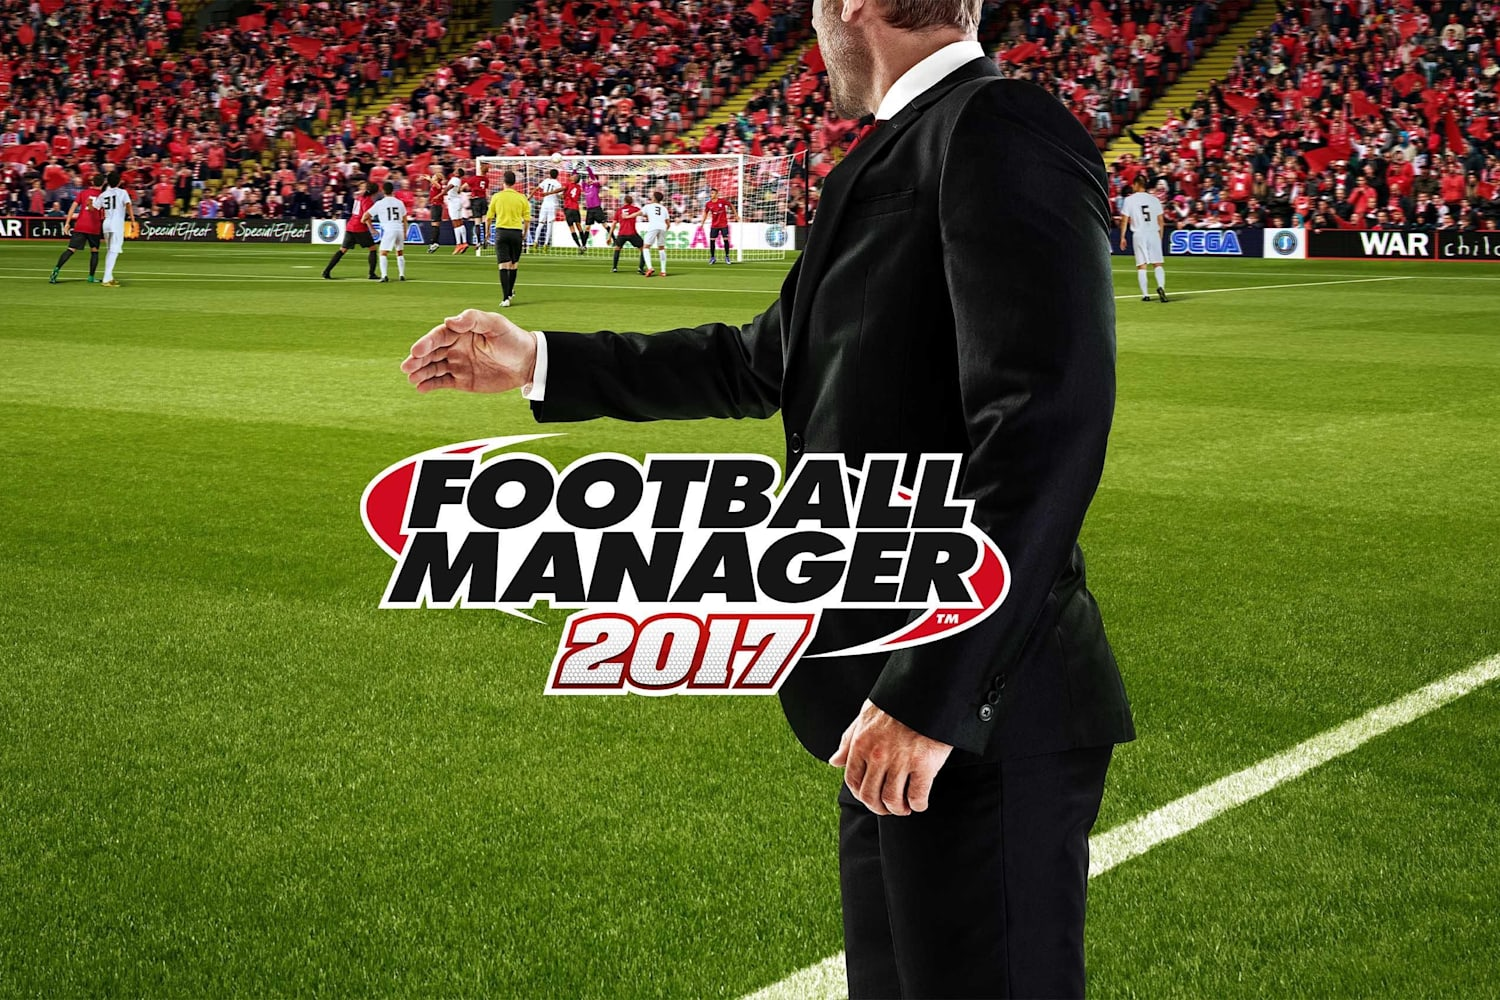 Football Manager 2017 Free Full Version PC Game Download